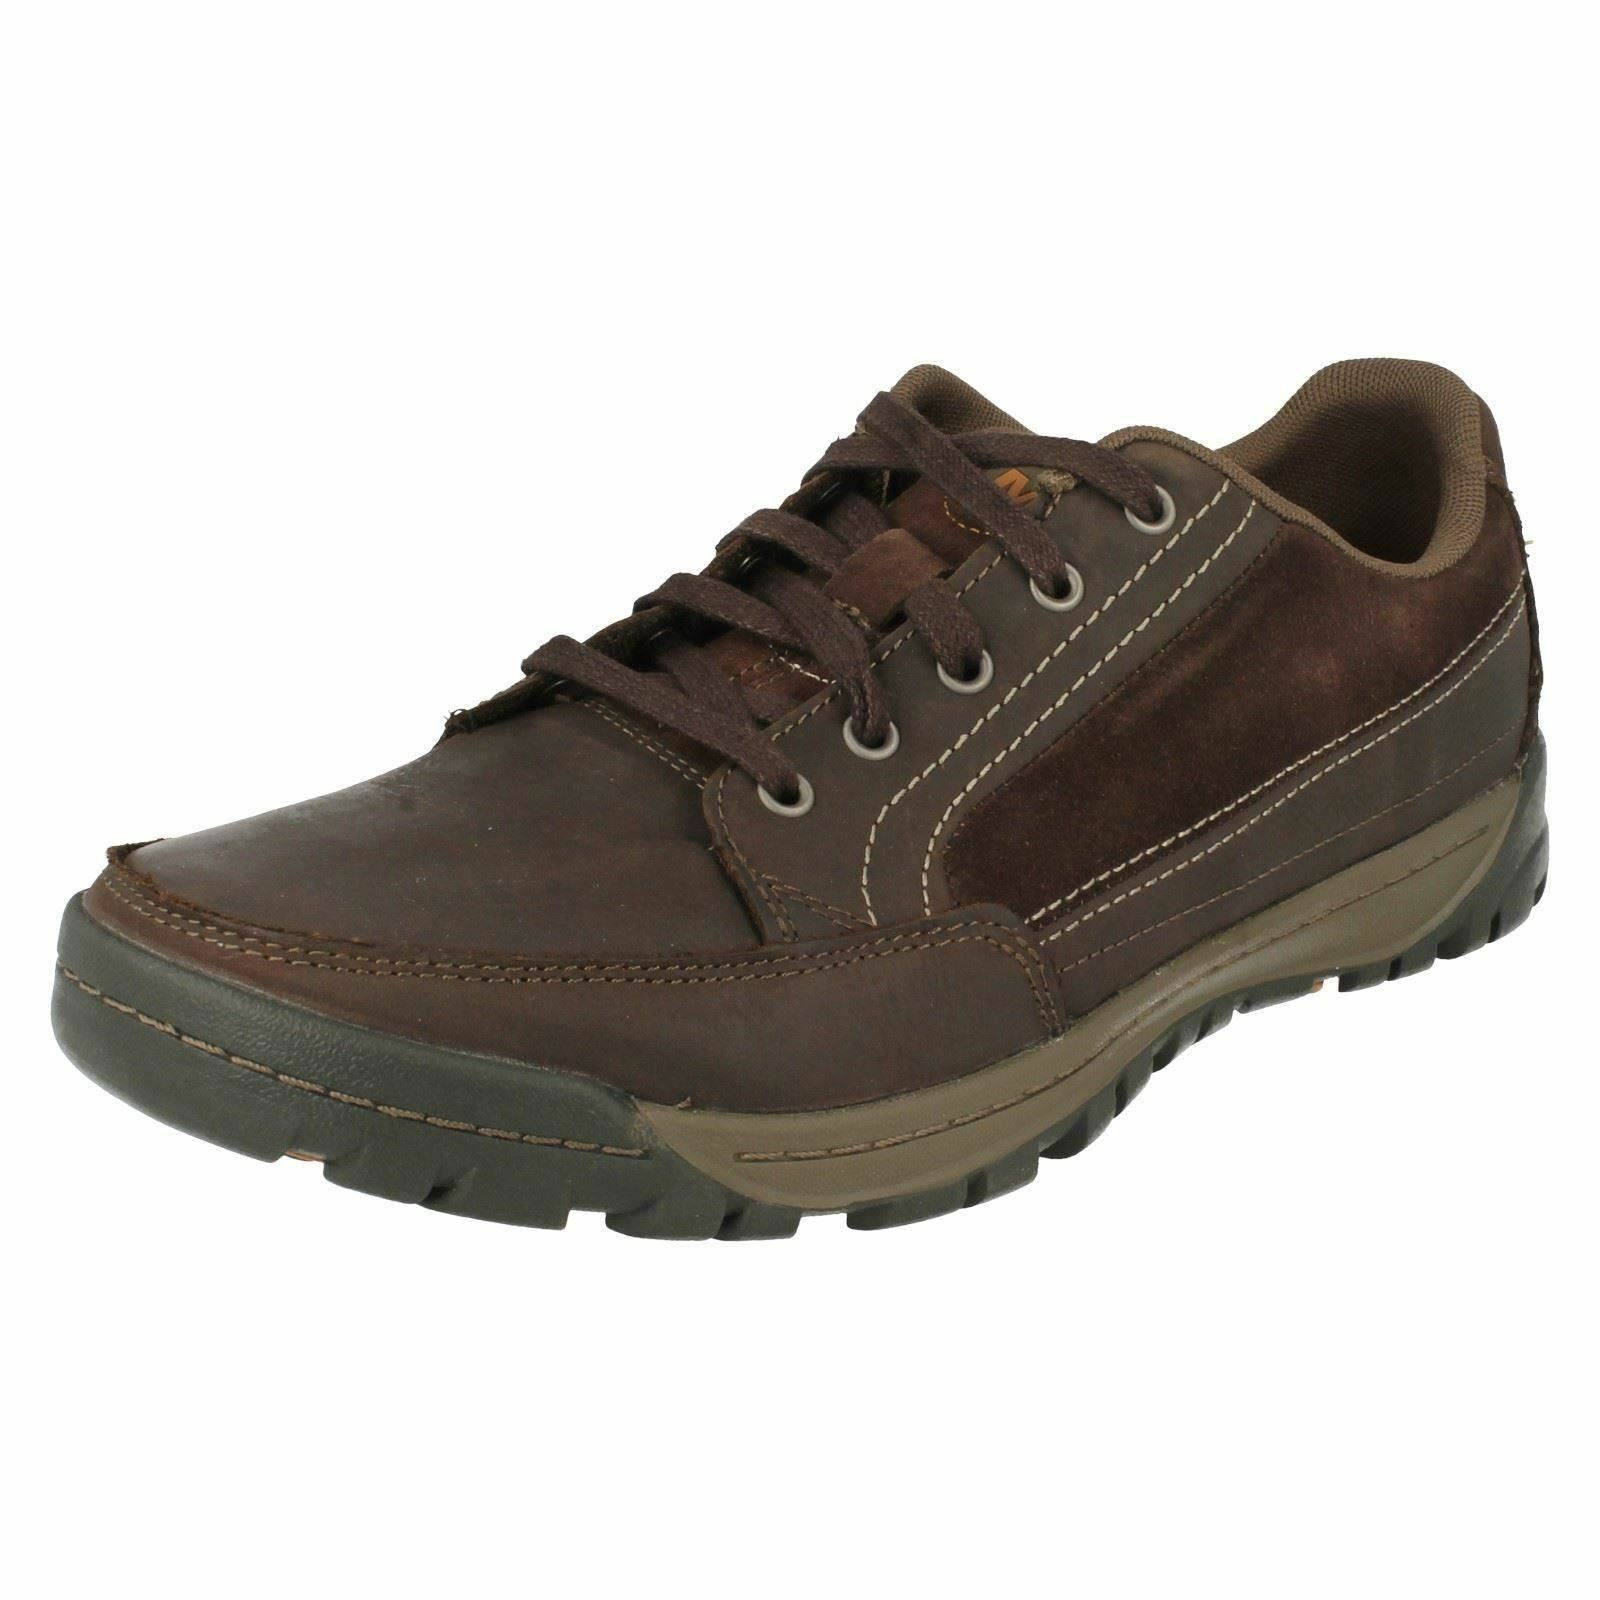 MENS MERRELL ESPRESSO CASUAL LACE UP WALKING TRAINERS STYLE - TRAVELER SPHERE